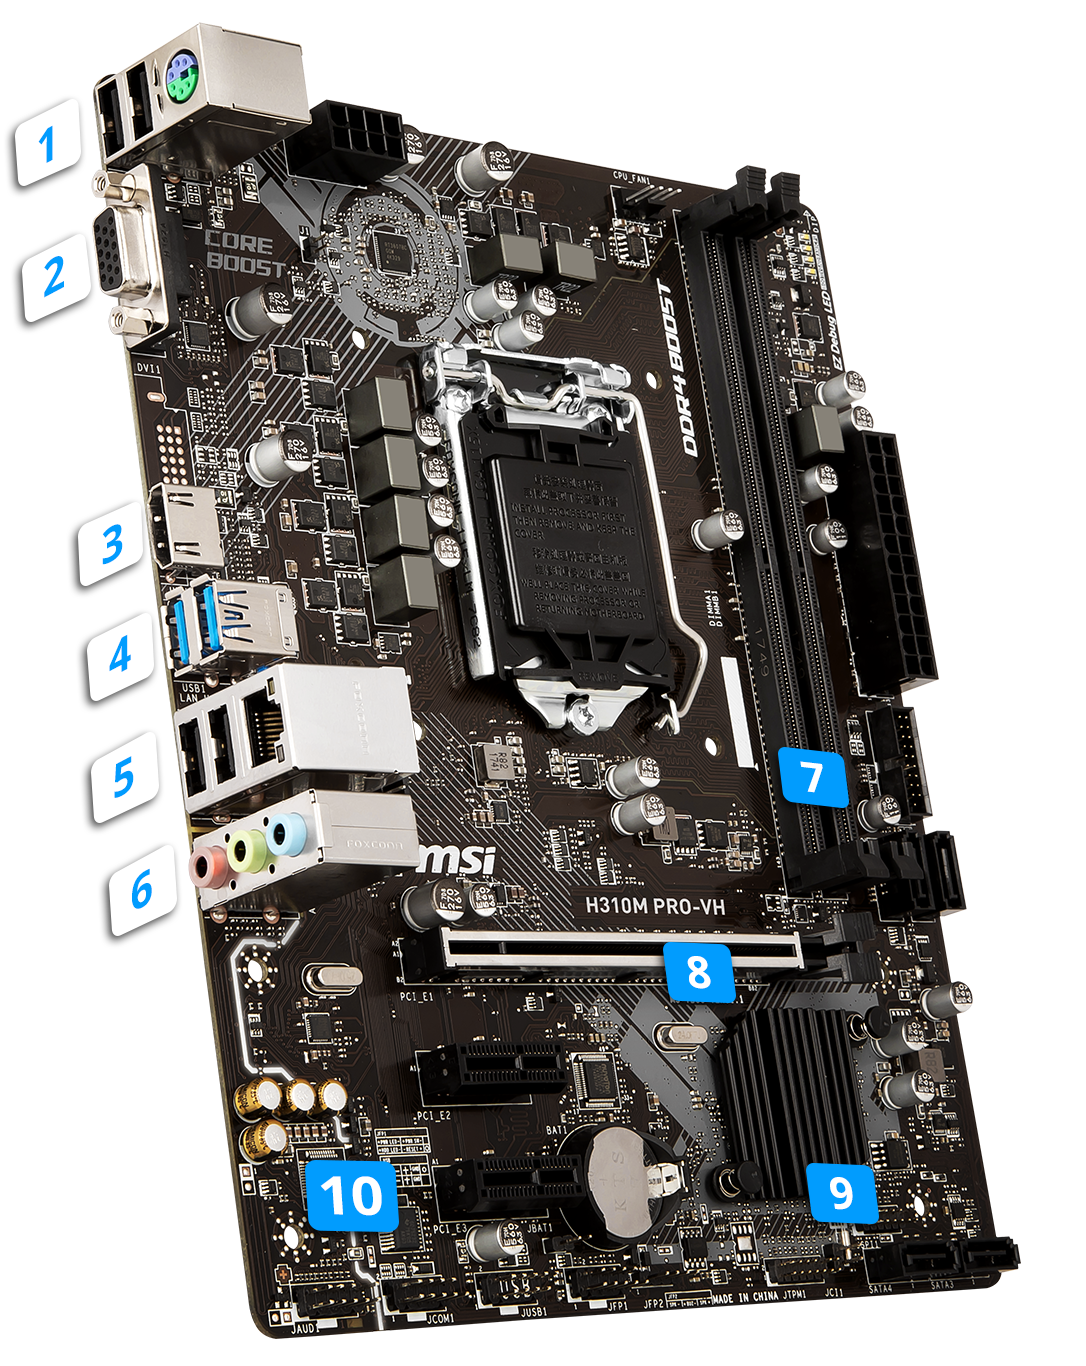 H310M PRO-VH | Motherboard - The world leader in motherboard